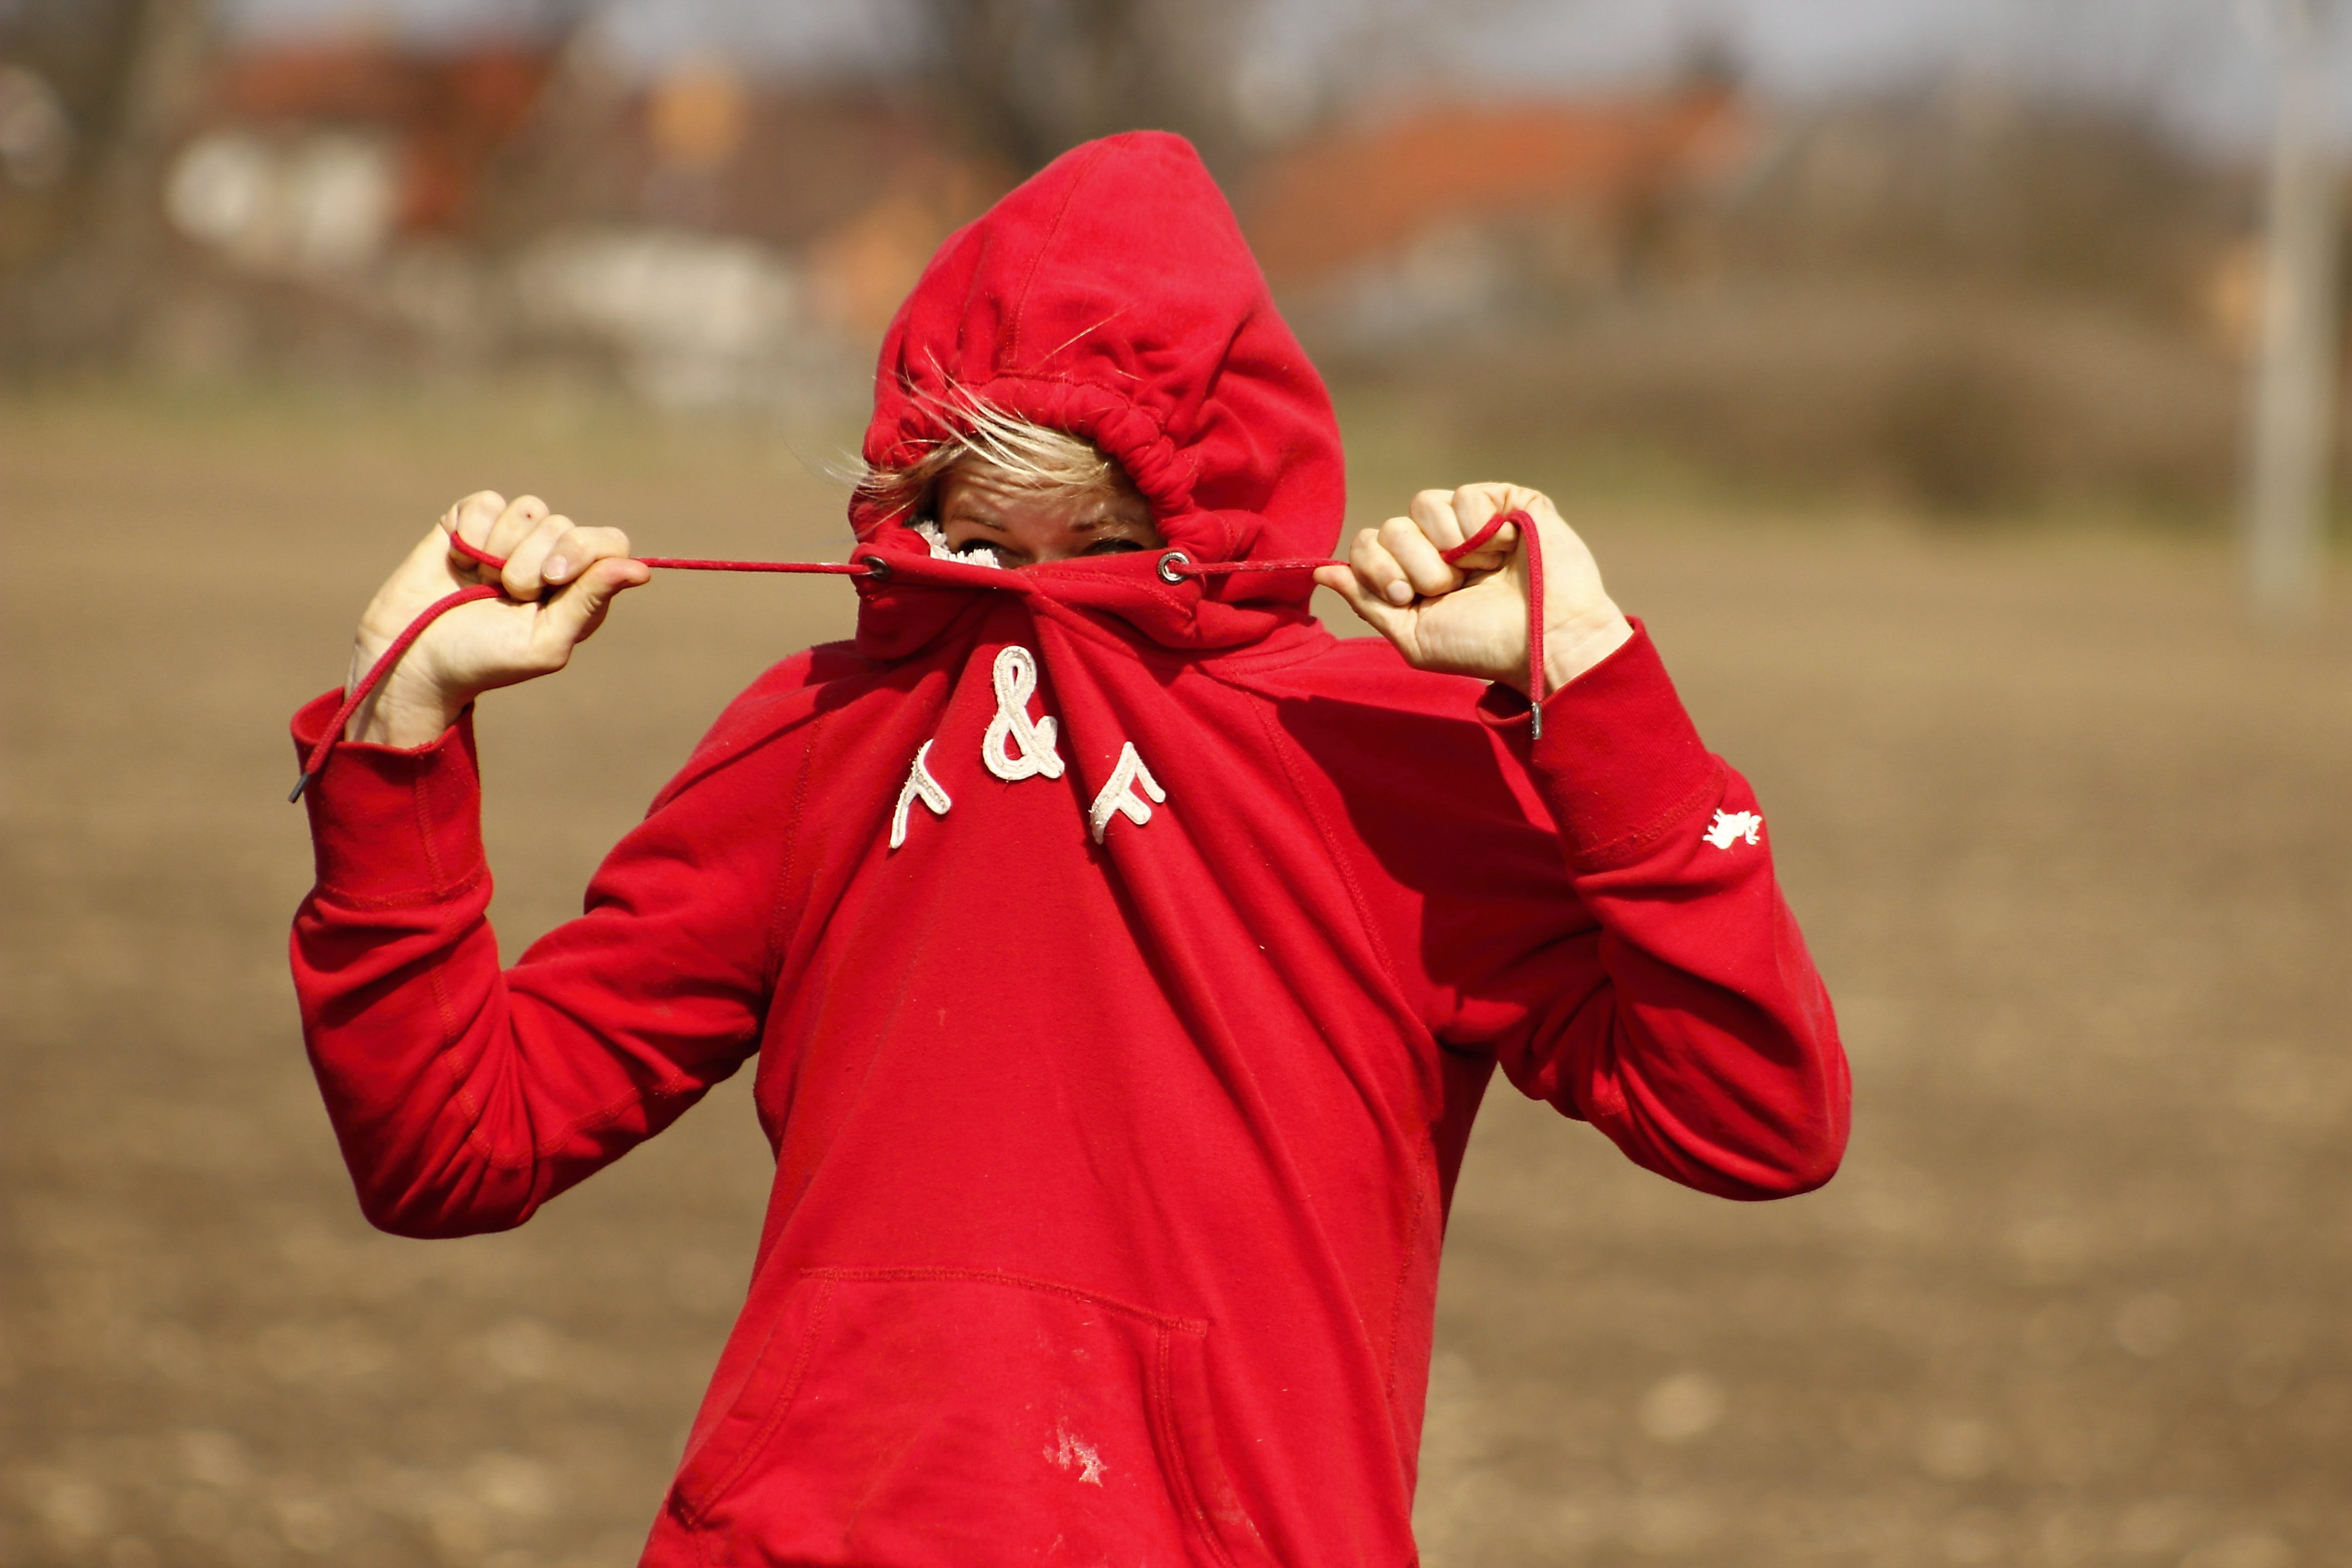 Person Wearing Red A&f Pullover Hoodie